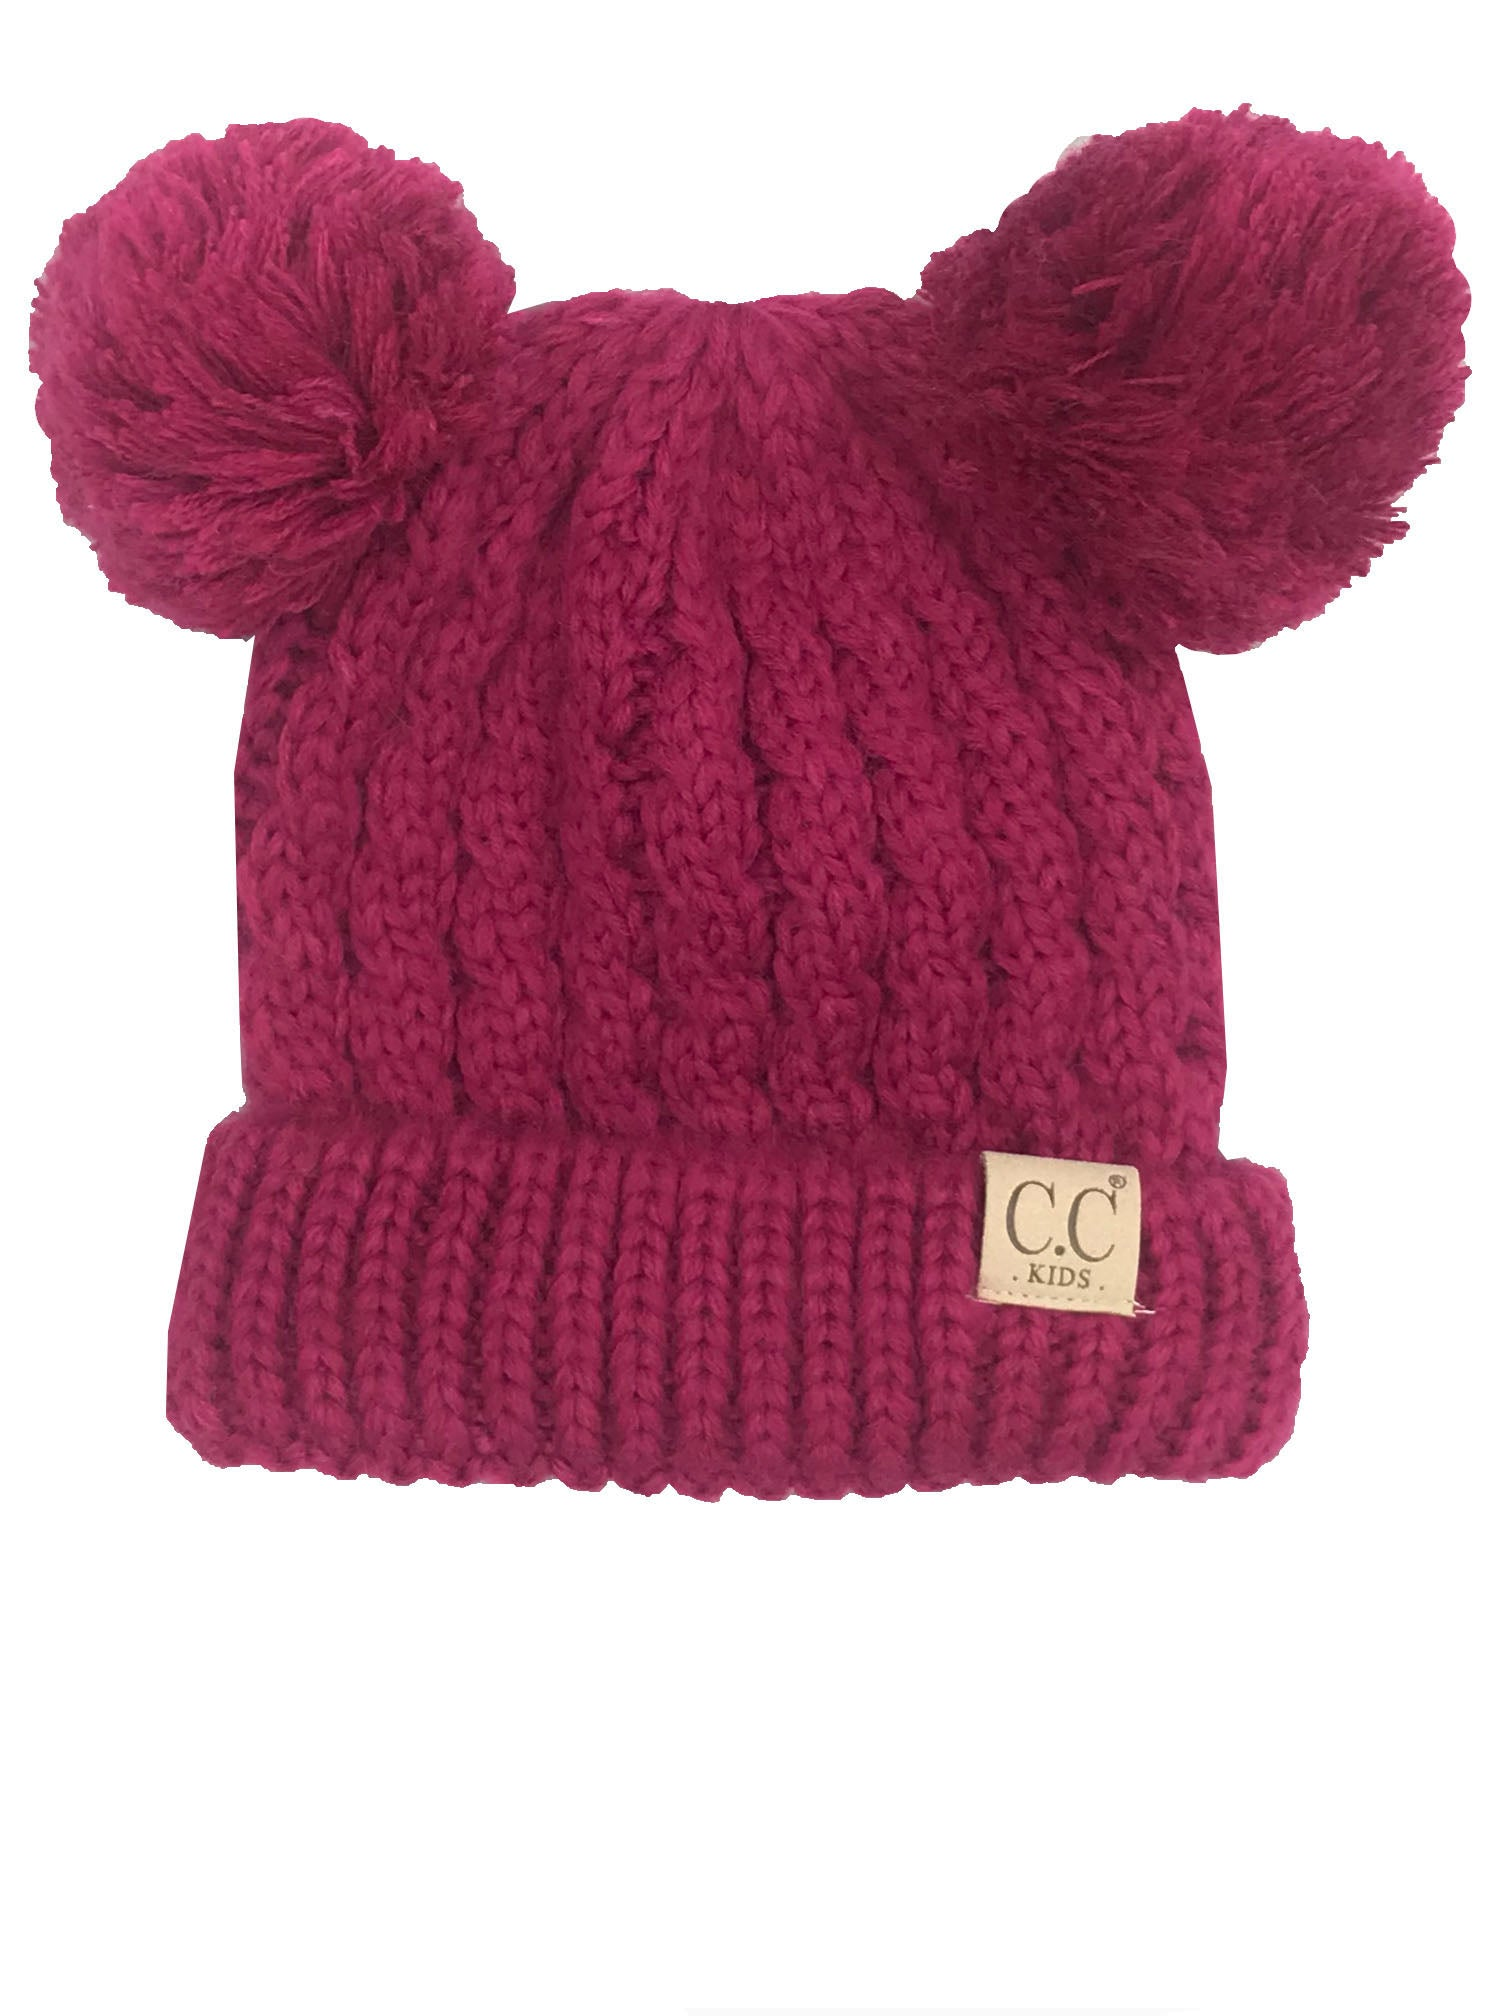 C.C Kid-24 Hot Pink Youth Beanie